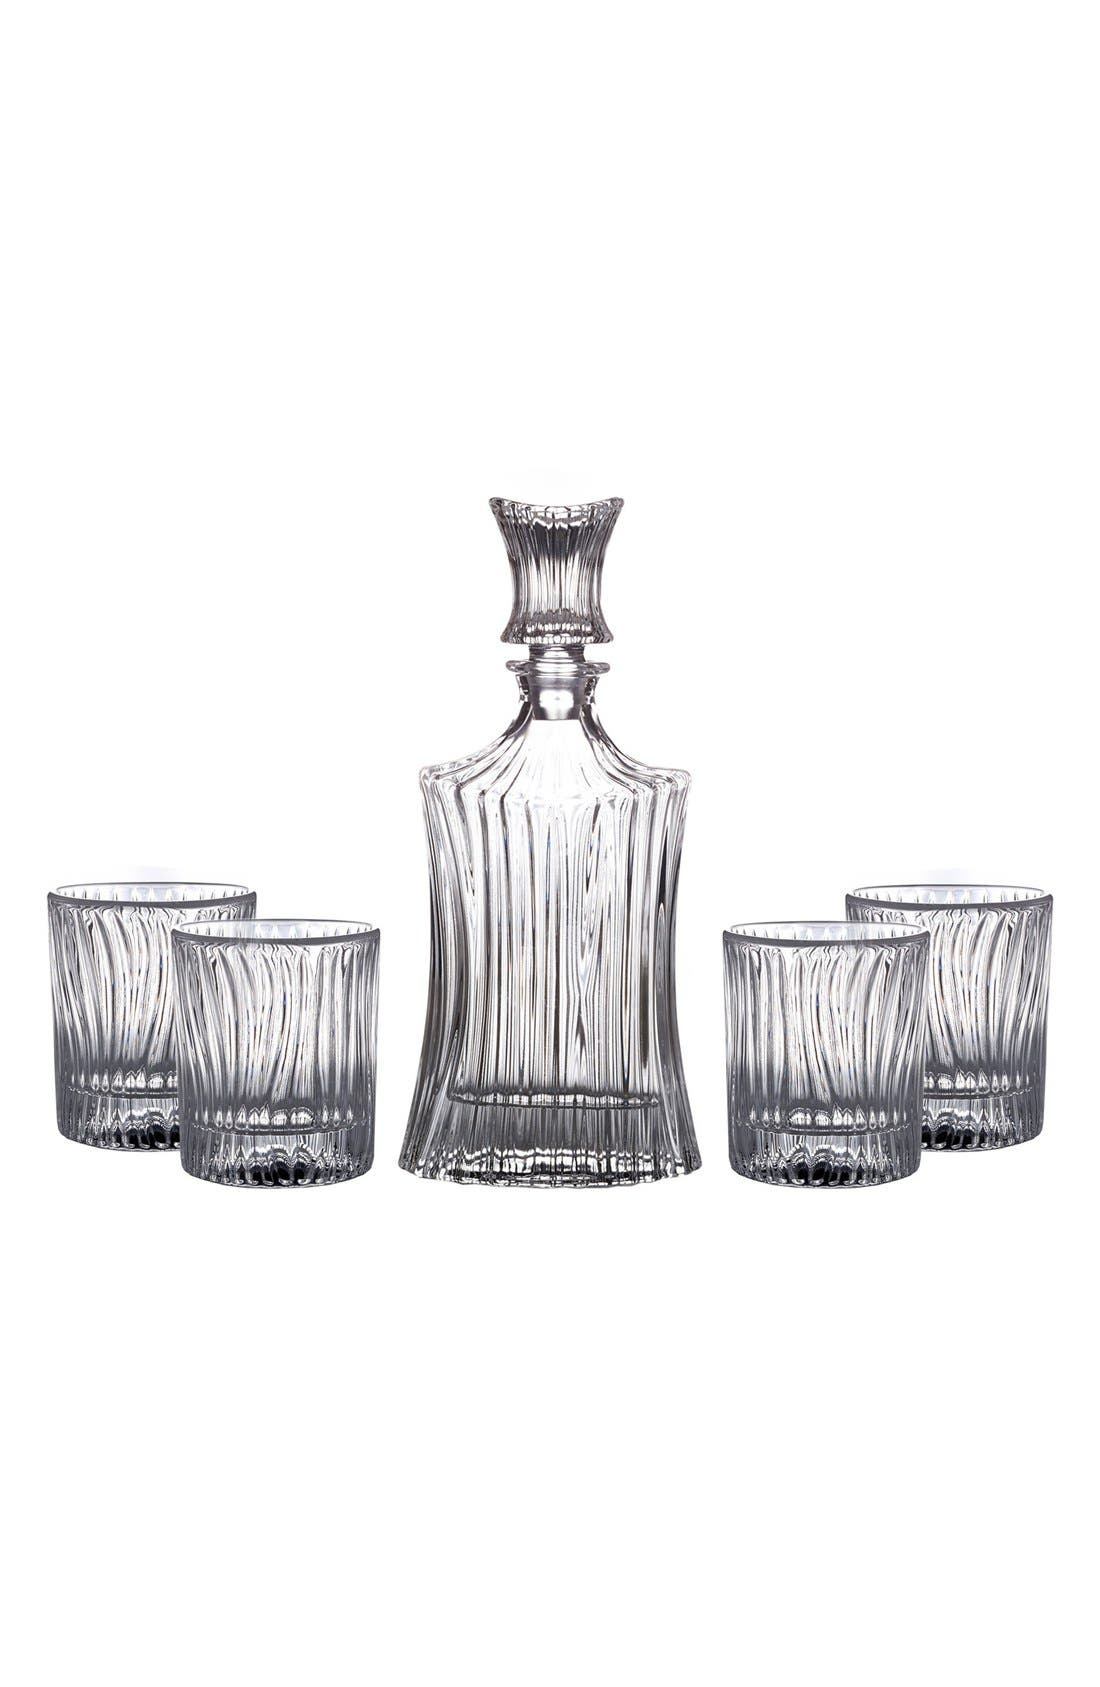 Main Image - American Atelier Augusta 5-Piece Decanter & Whiskey Glasses Set